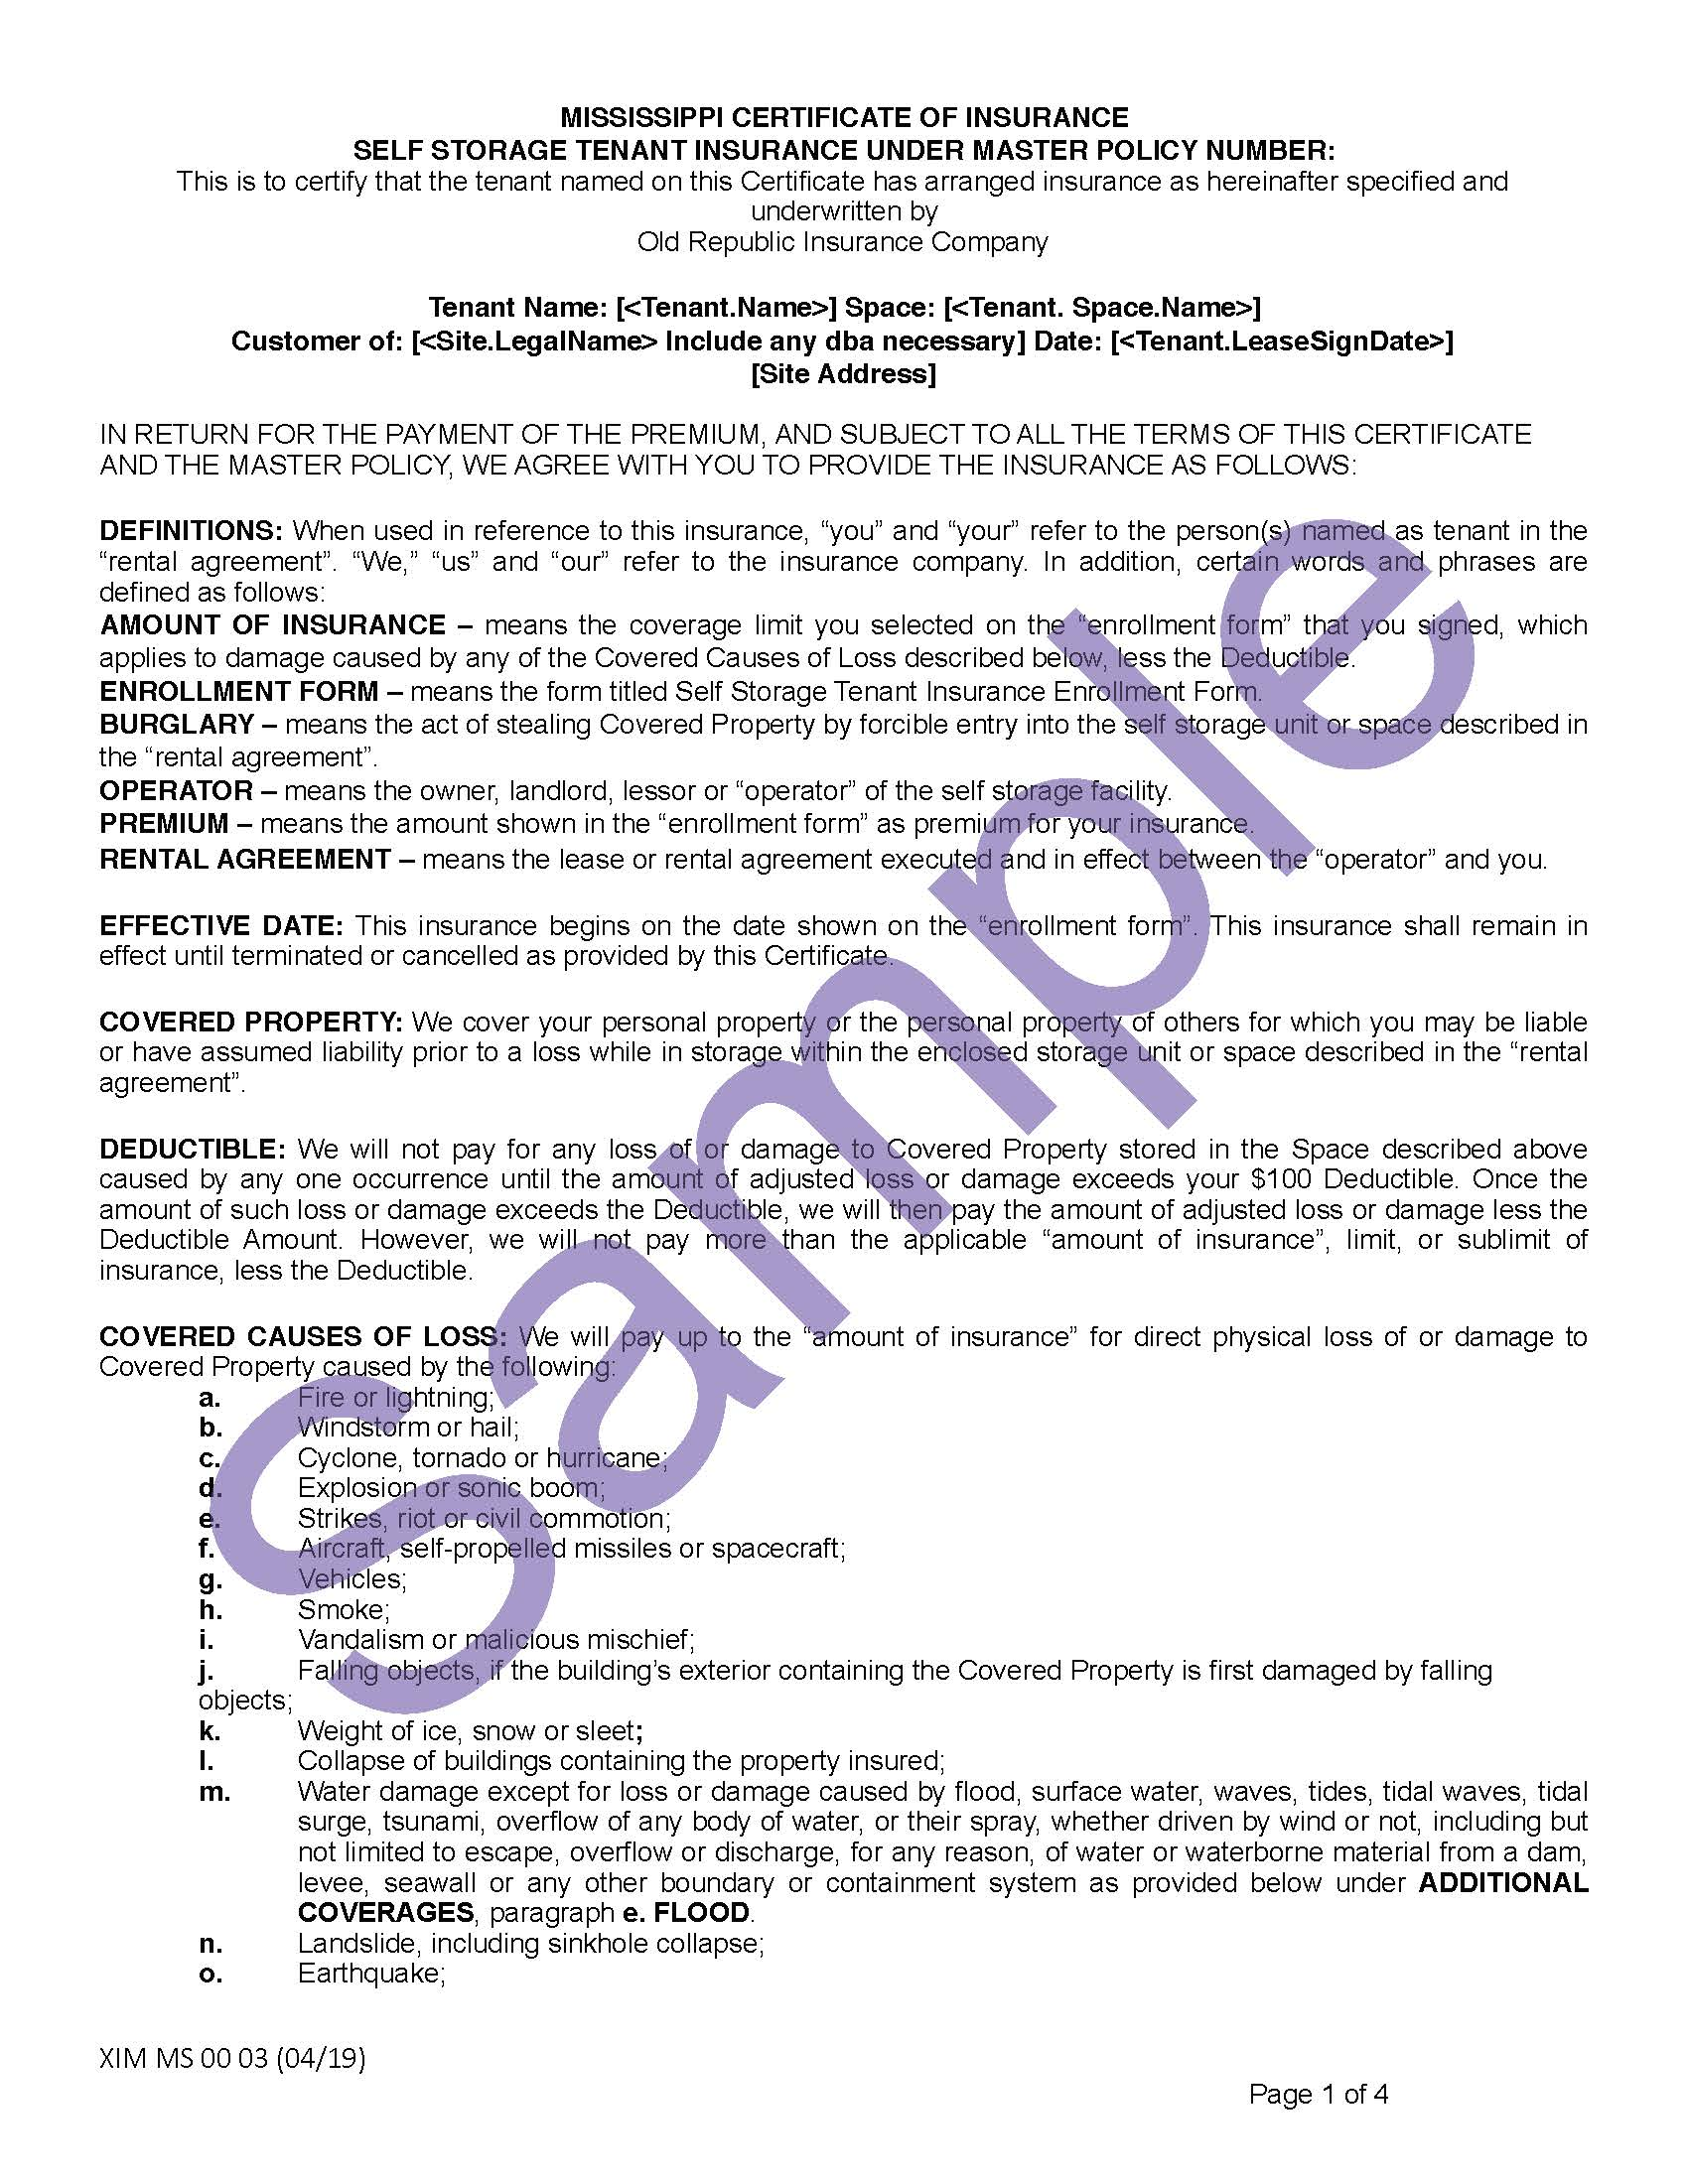 XIM MS 00 03 04 19 Mississippi Certificate of InsuranceSample_Page_1.jpg